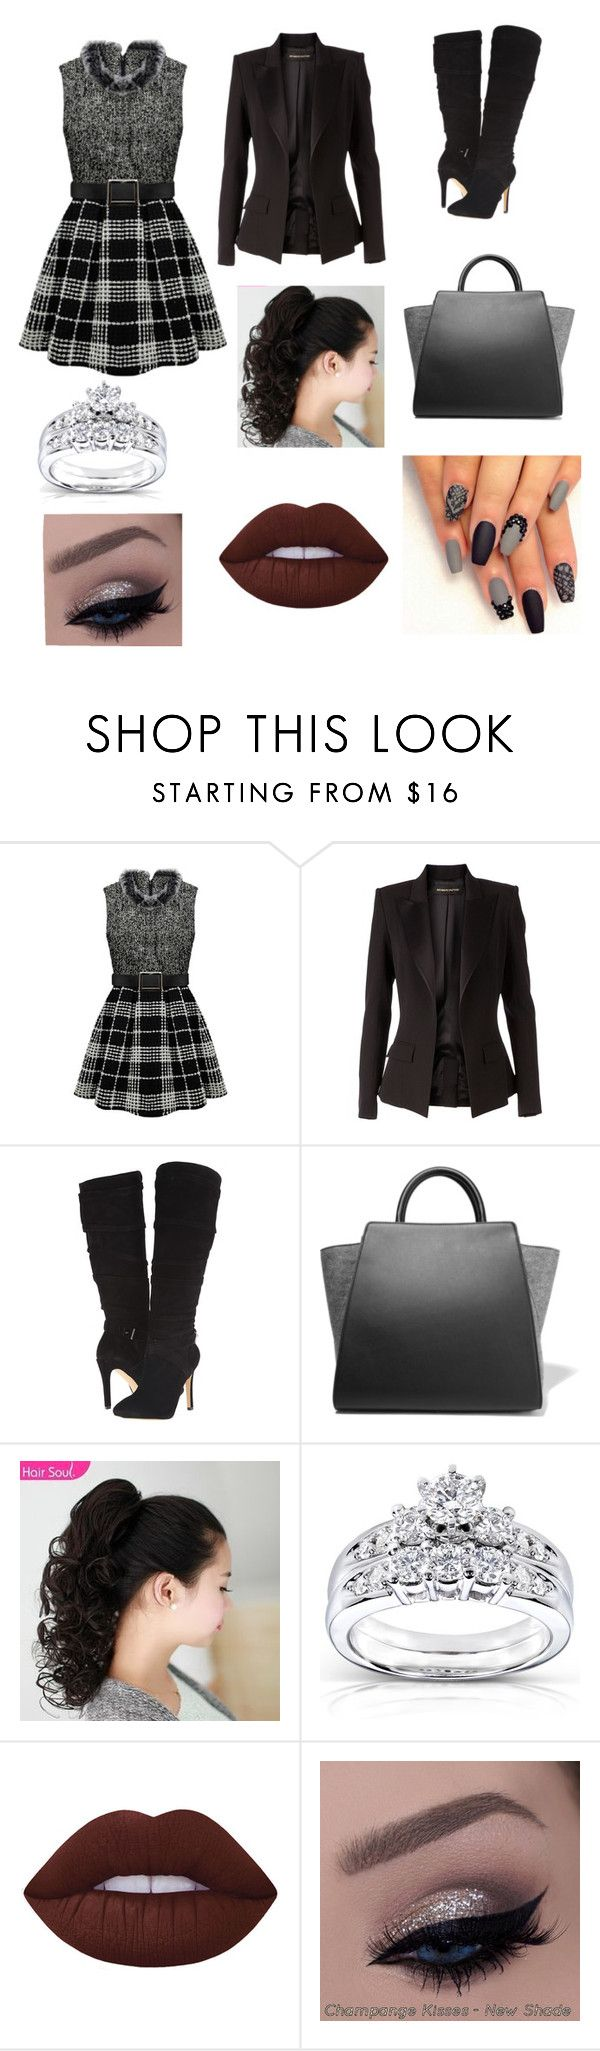 """Gray and Black"" by cheerleader1o1 on Polyvore featuring Alexandre Vauthier, GUESS, ZAC Zac Posen, Kobelli and Lime Crime"